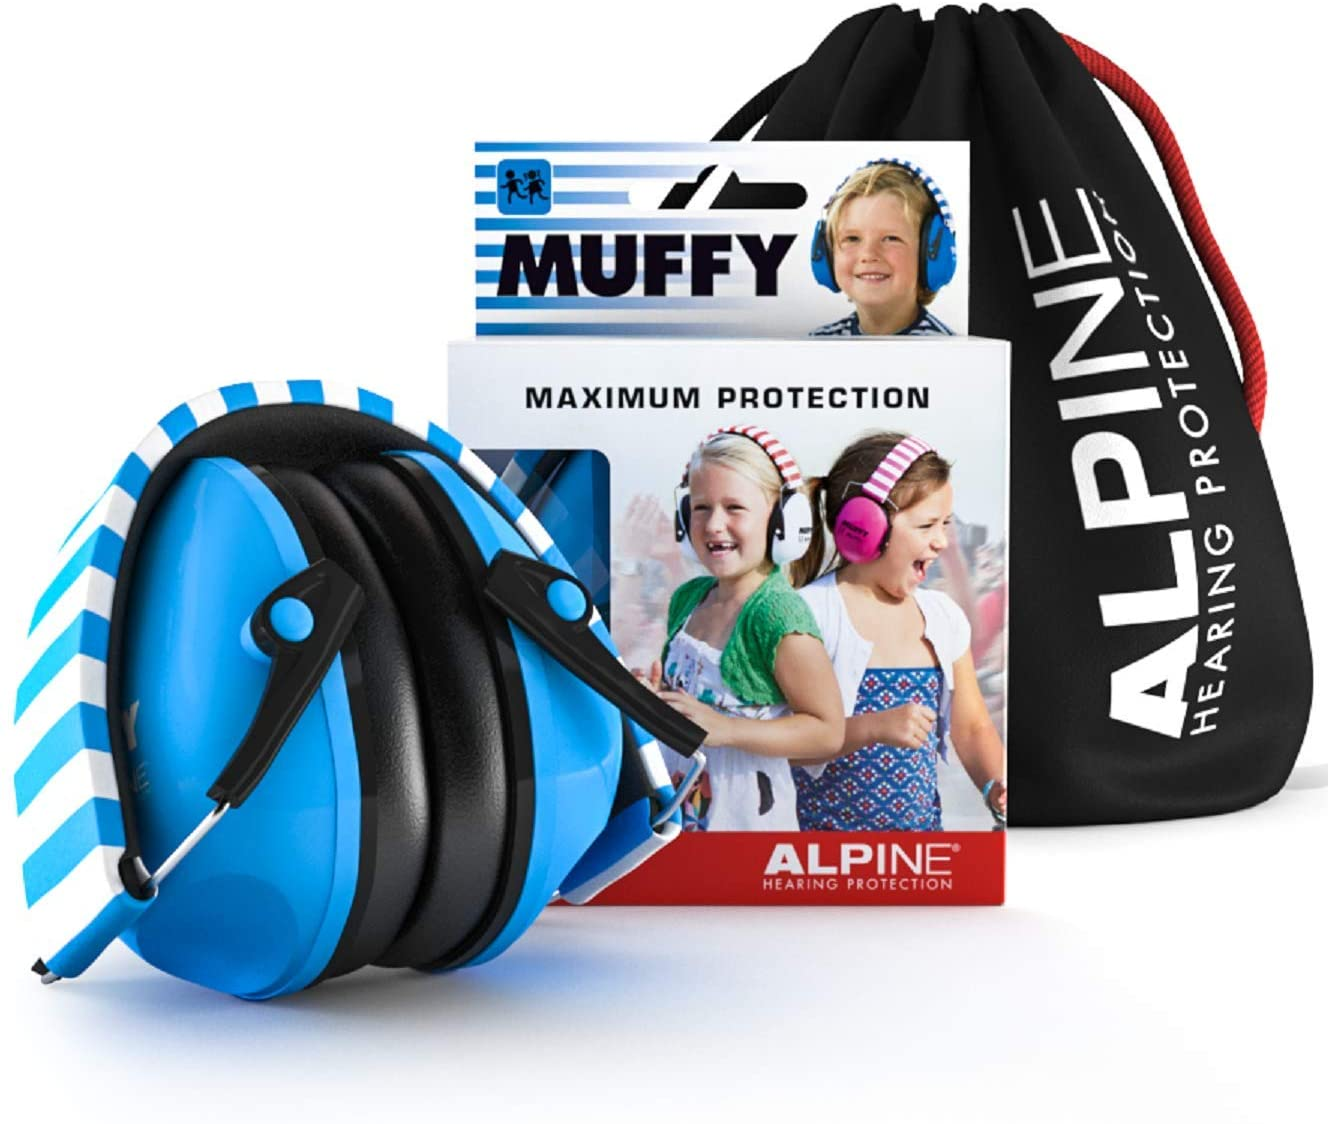 Alpine Muffy Ear Defender Kids - Hearing Protection for Children and Toddlers - Earmuffs to prevent hearing damage and reduce noise - Robust and easy to store - Comfortable fit - Blue